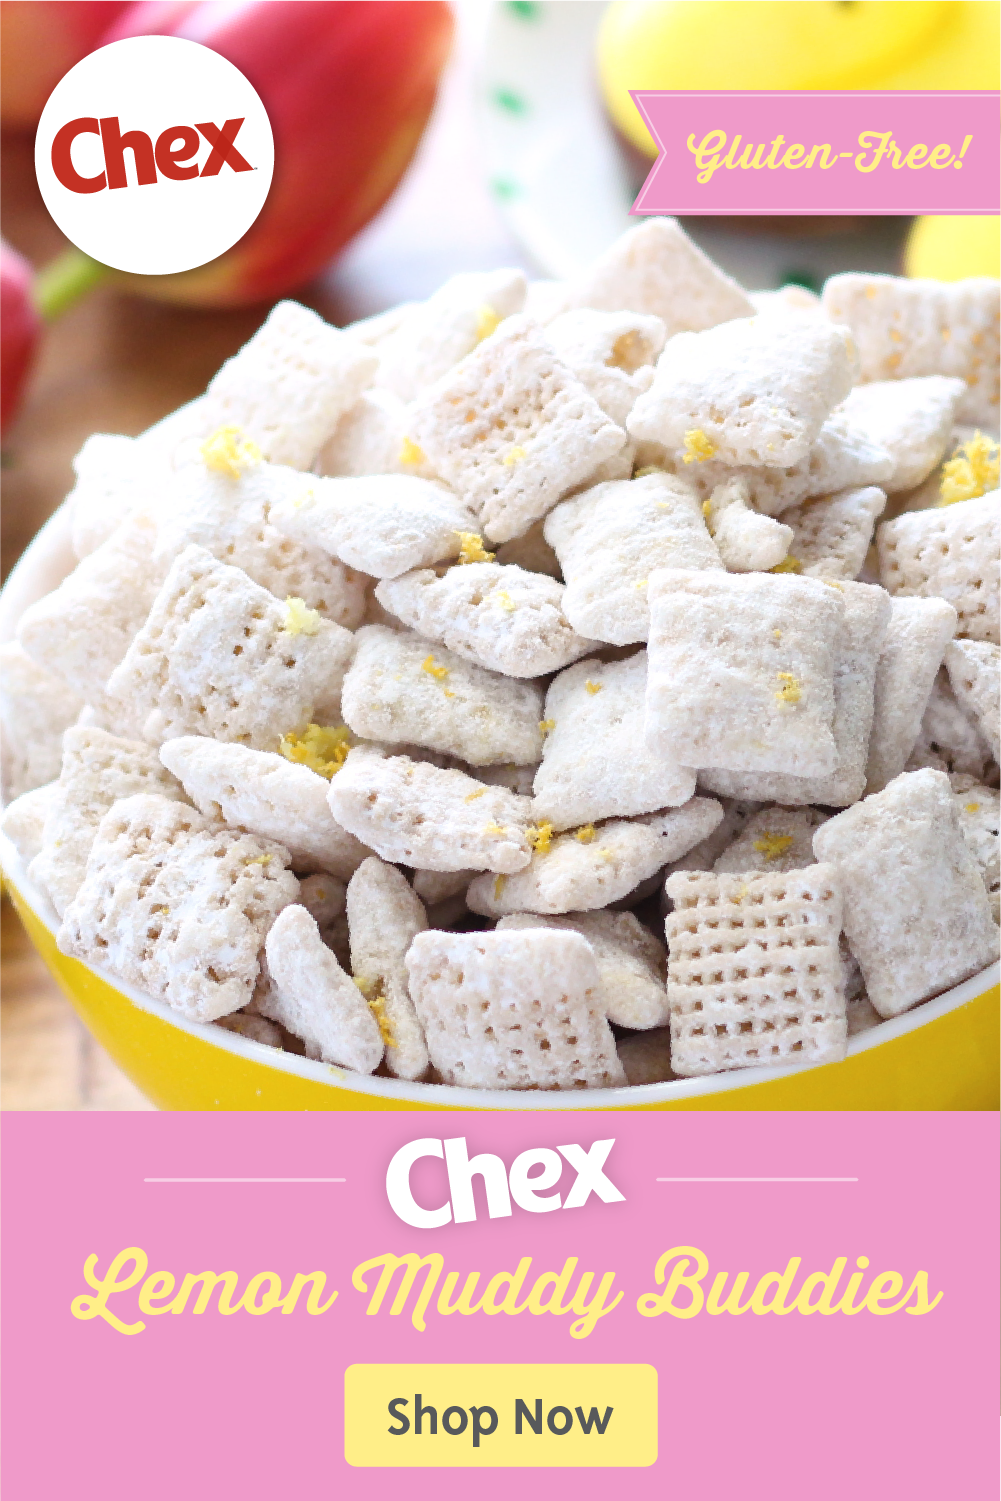 Gluten Free Chex Lemon Buddies Recipe In 2020 Food Food Recipes Chex Recipes